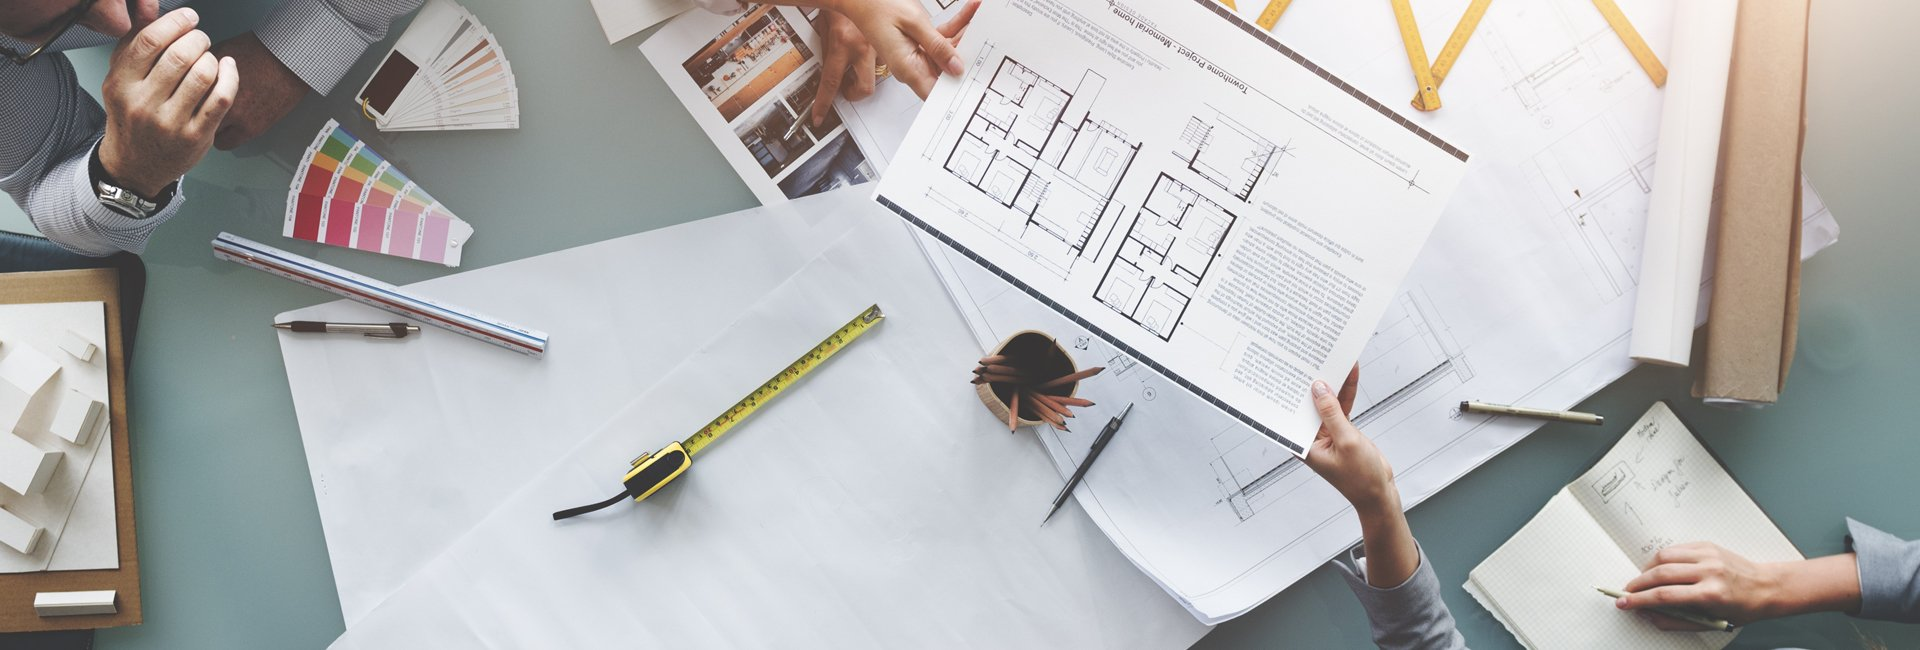 Well established architectural consulting in Sussex - ^